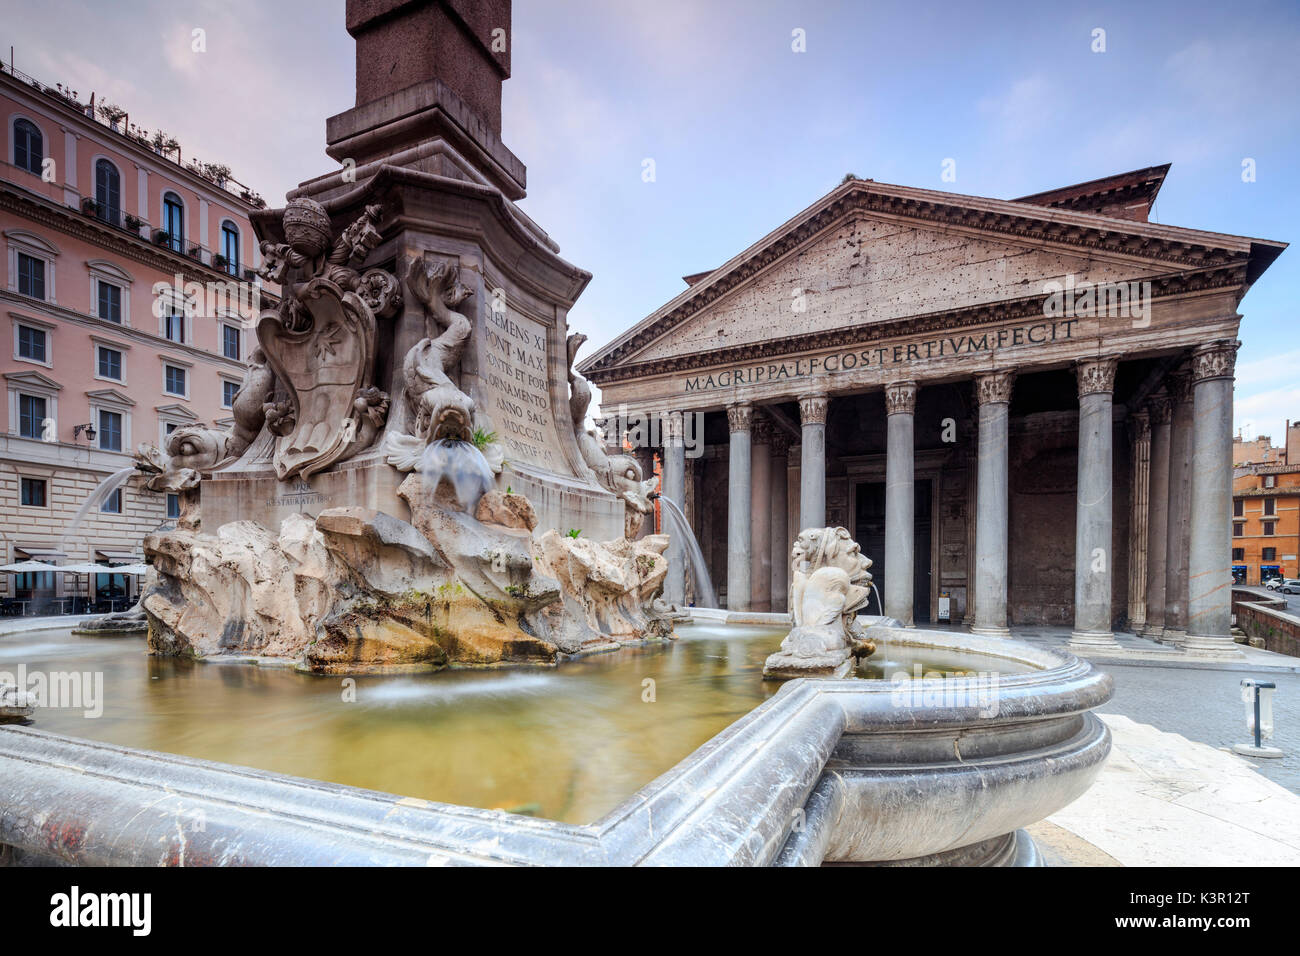 View of old Pantheon a circular building with a portico of granite Corinthian columns and its fountains Rome Lazio Italy Europe - Stock Image